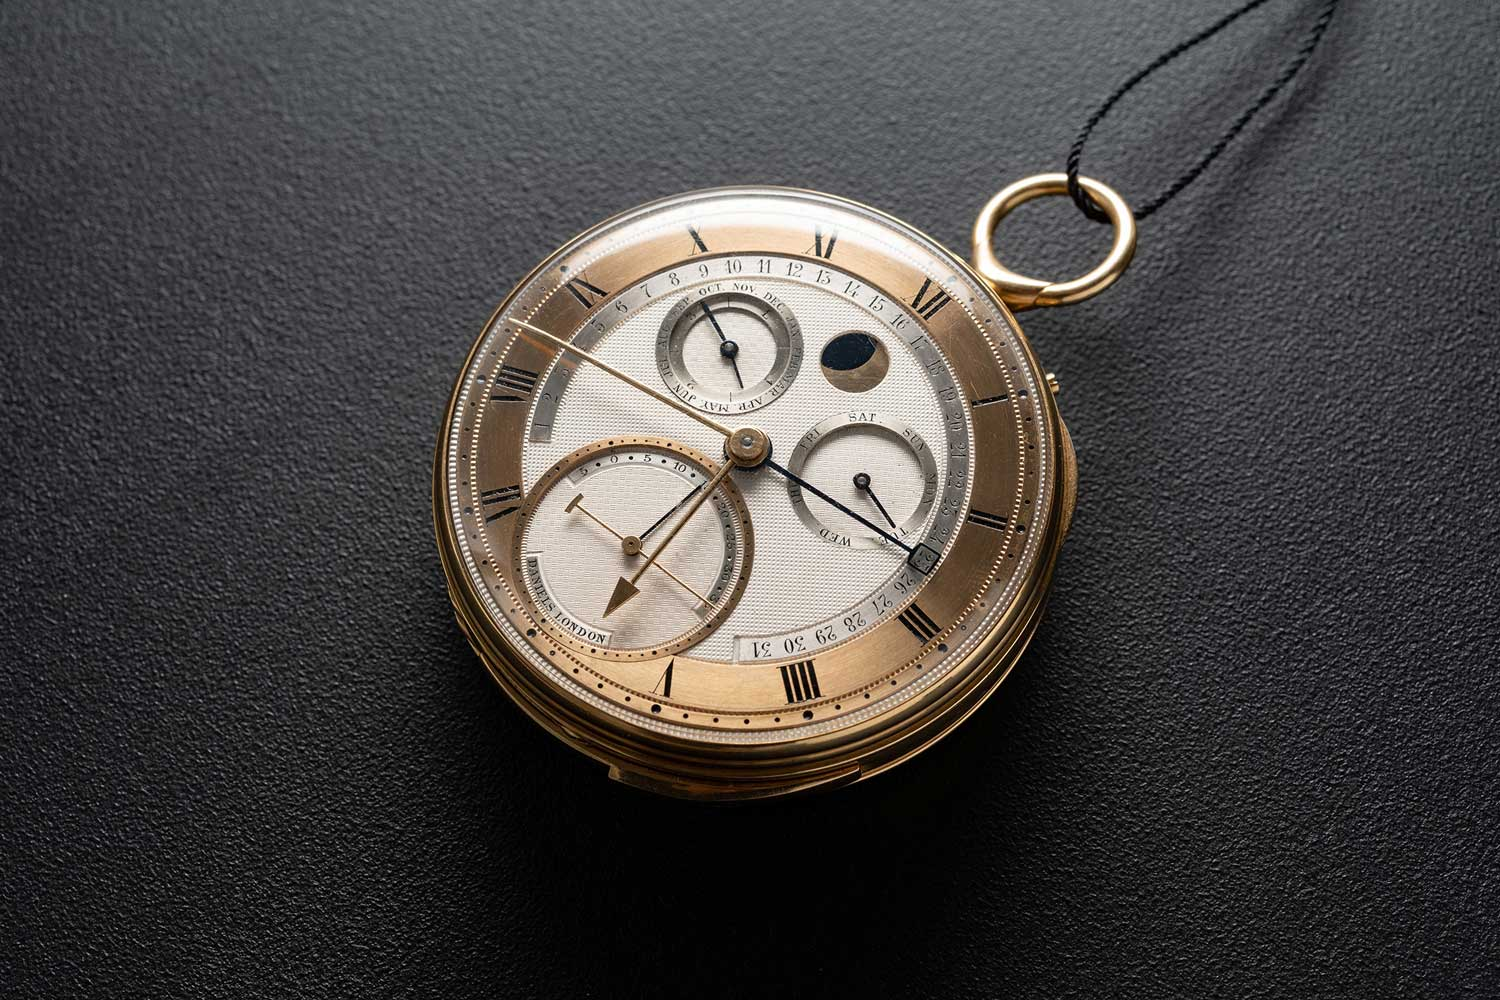 Lot 34: George Daniels Grand Complication (Image © Revolution)